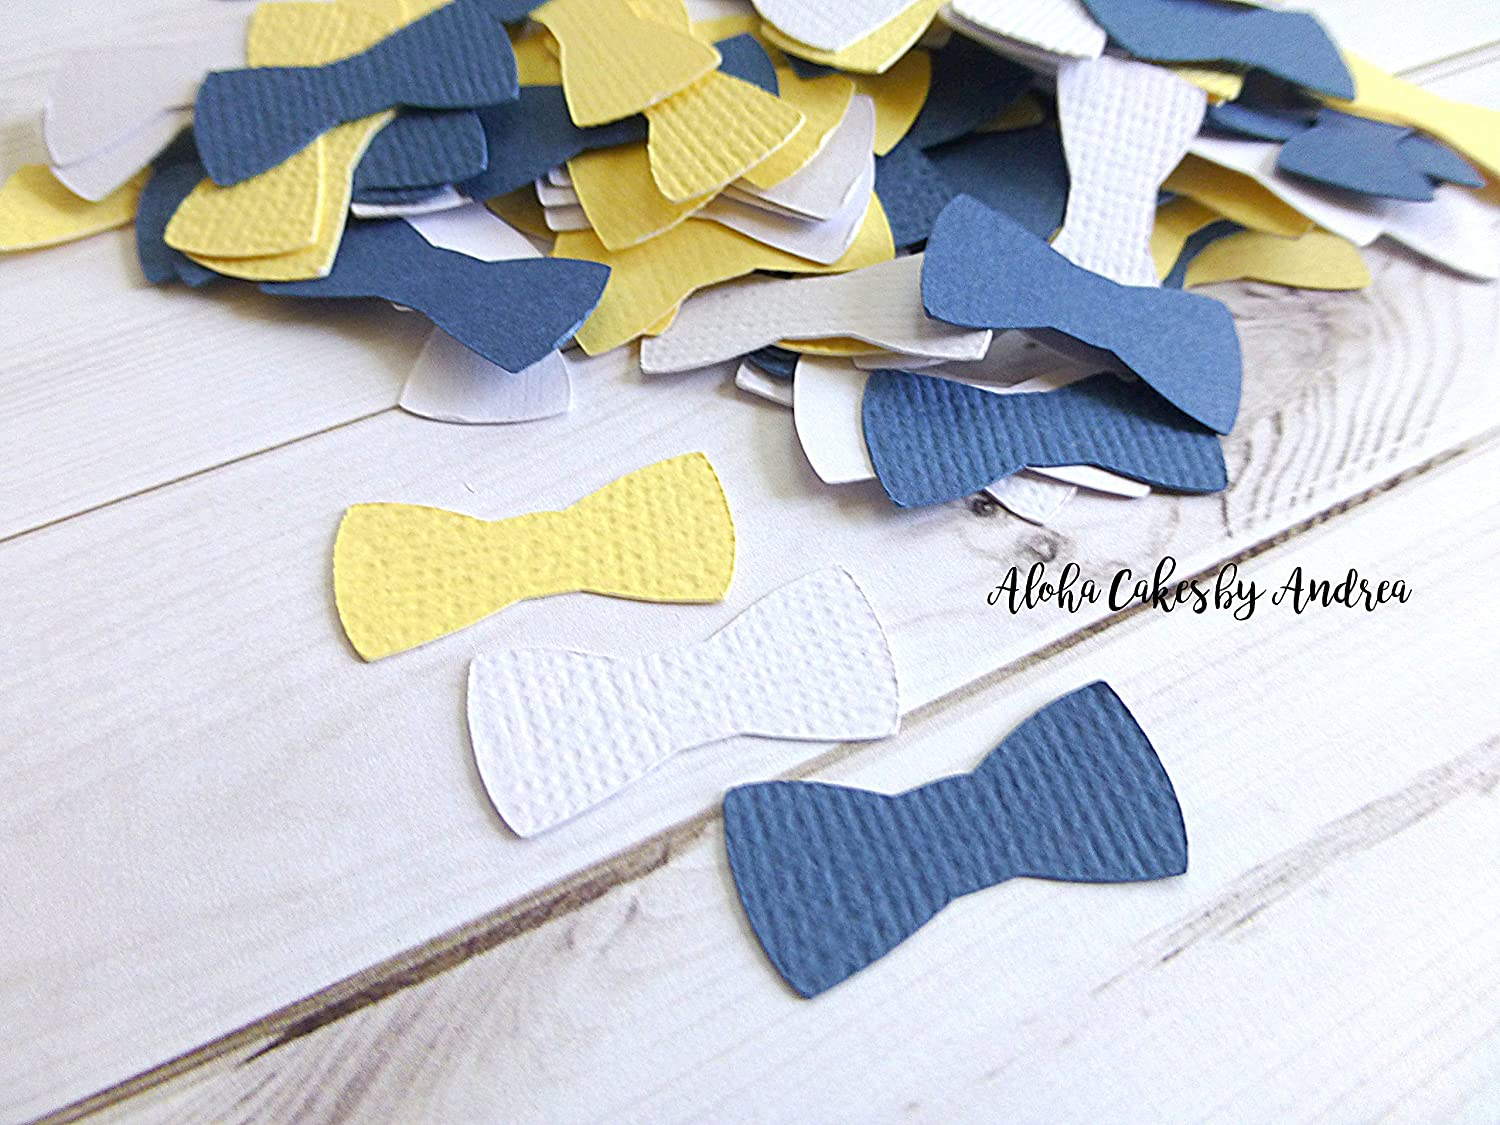 1 inch Bow Tie Confetti in Navy Blue, Yellow and White, Baby Shower Decorations, Table Confetti, Boy Birthday Party, package of 200